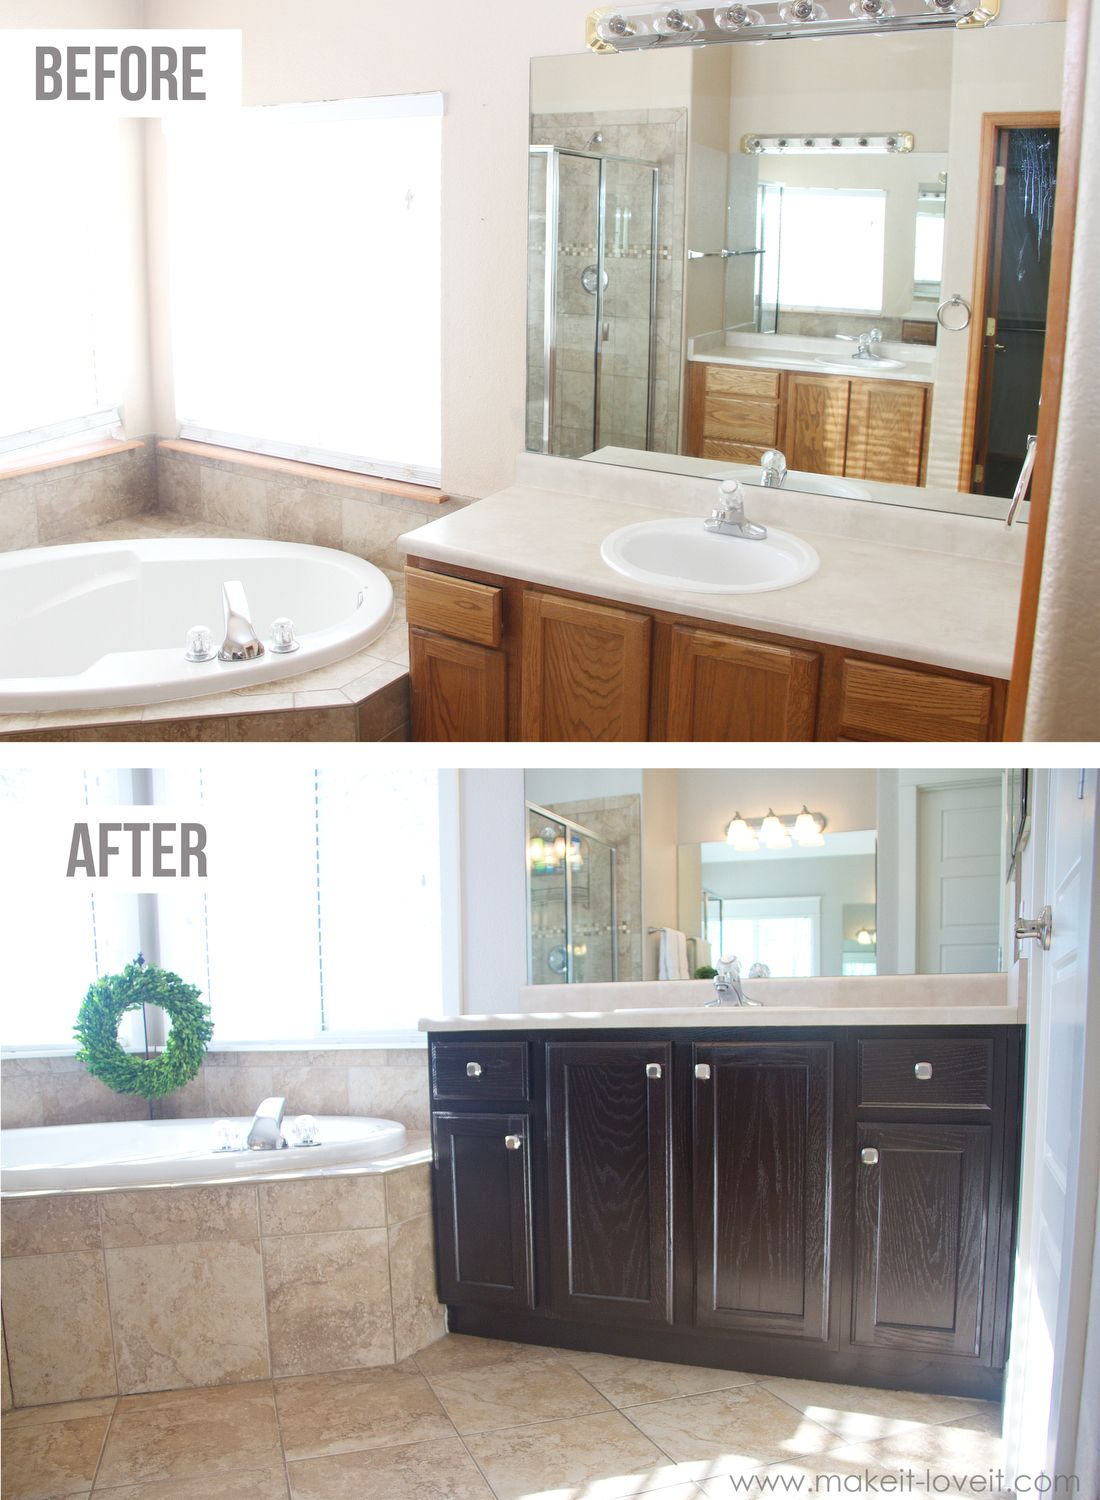 Kitchen Vanities Tiny House Kitchens How You Can Stain Oak Cabinets And Bathroom To The Simple Method No Sanding Necessary Via Make It Love